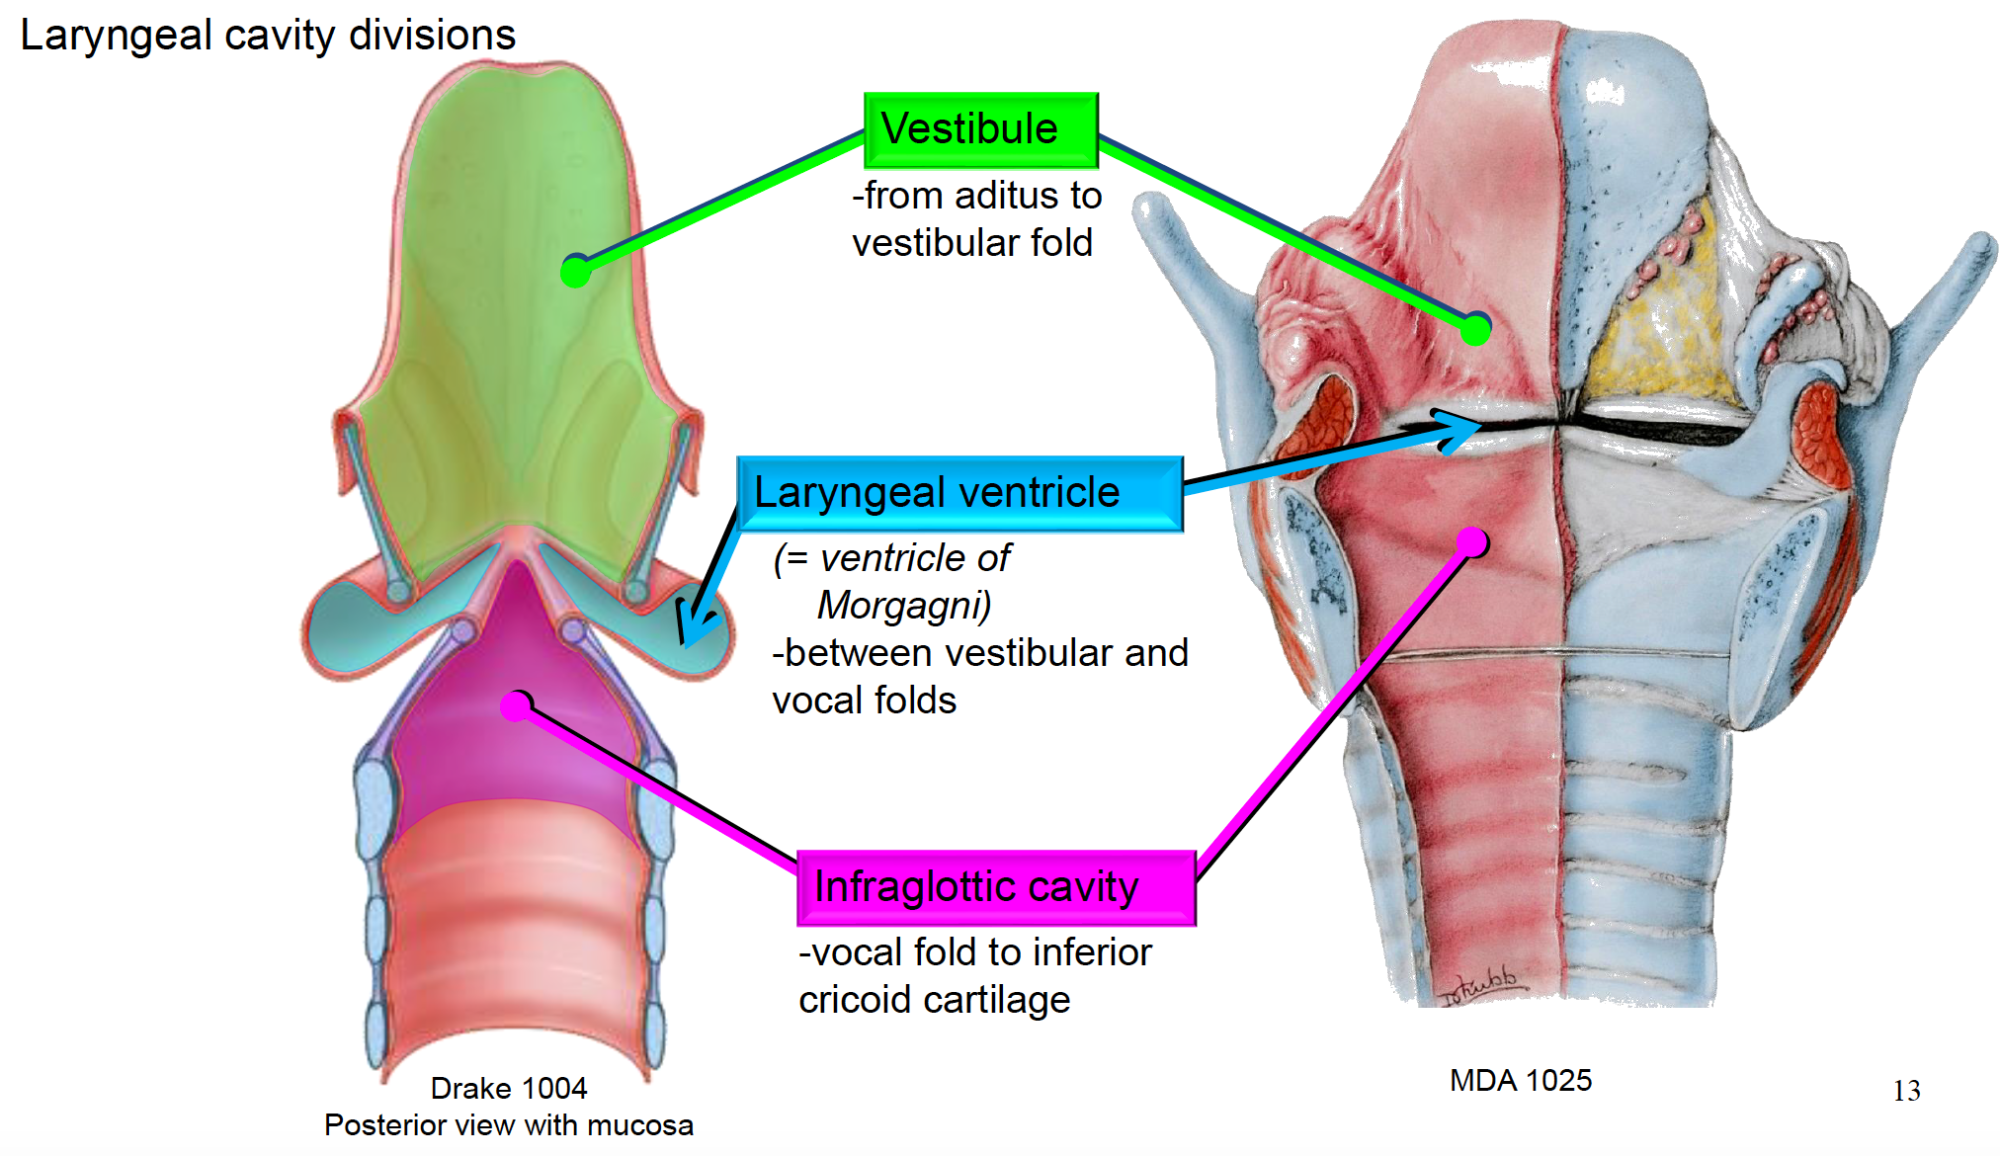 hight resolution of  infraglottic cavity vocal fold to inferior cricoid cartilage